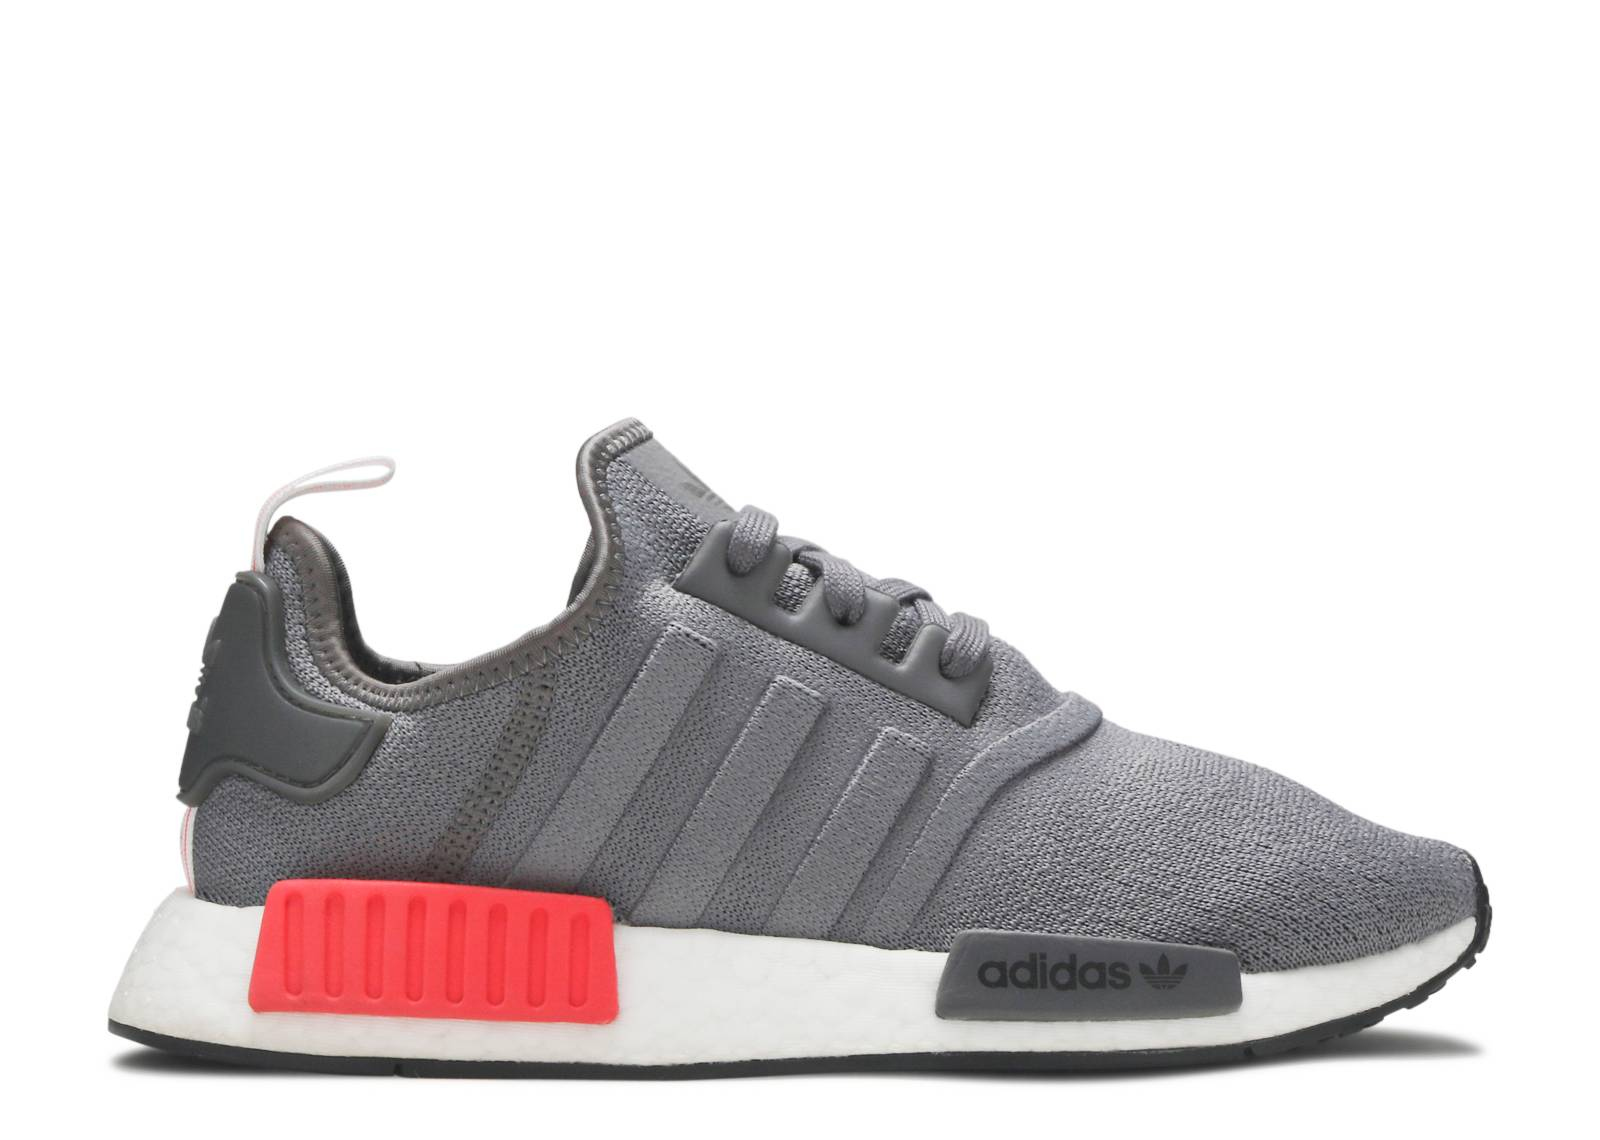 03b01636362 Adidas NMD - adidas Originals Men's & Women's Shoes | Flight Club